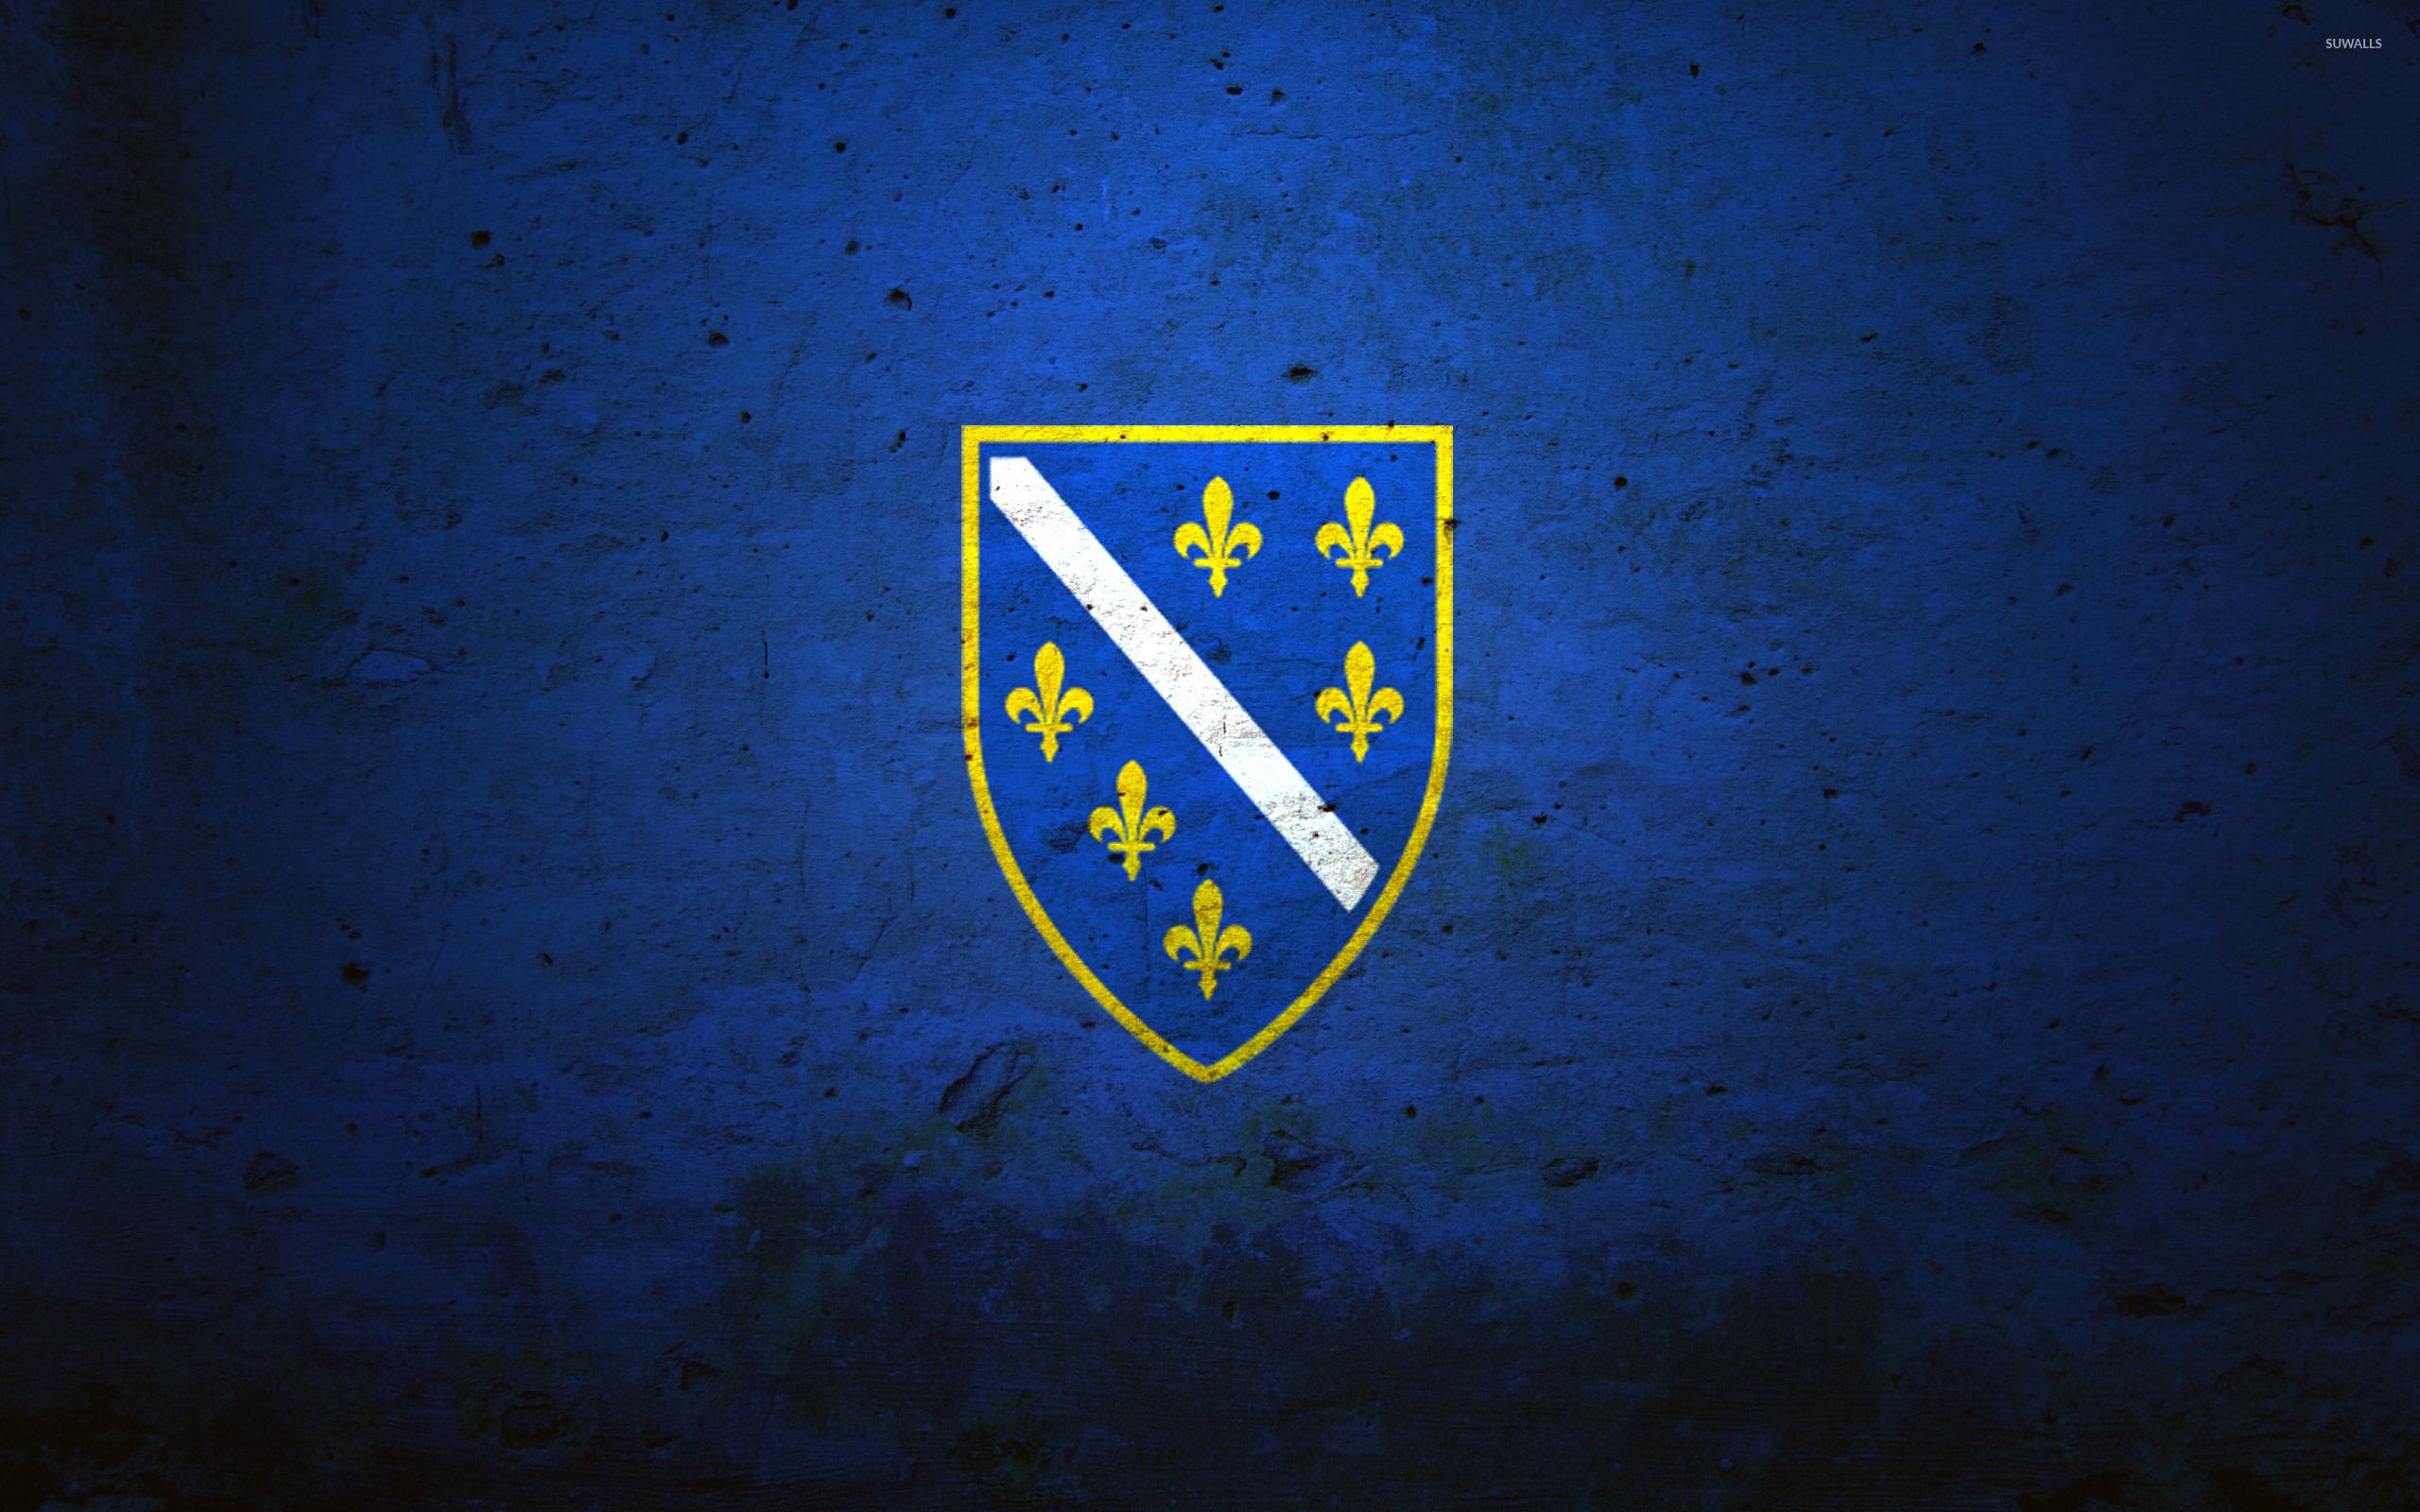 Flag of the Bosnian Kingdom wallpaper   Digital Art wallpapers 2560x1600